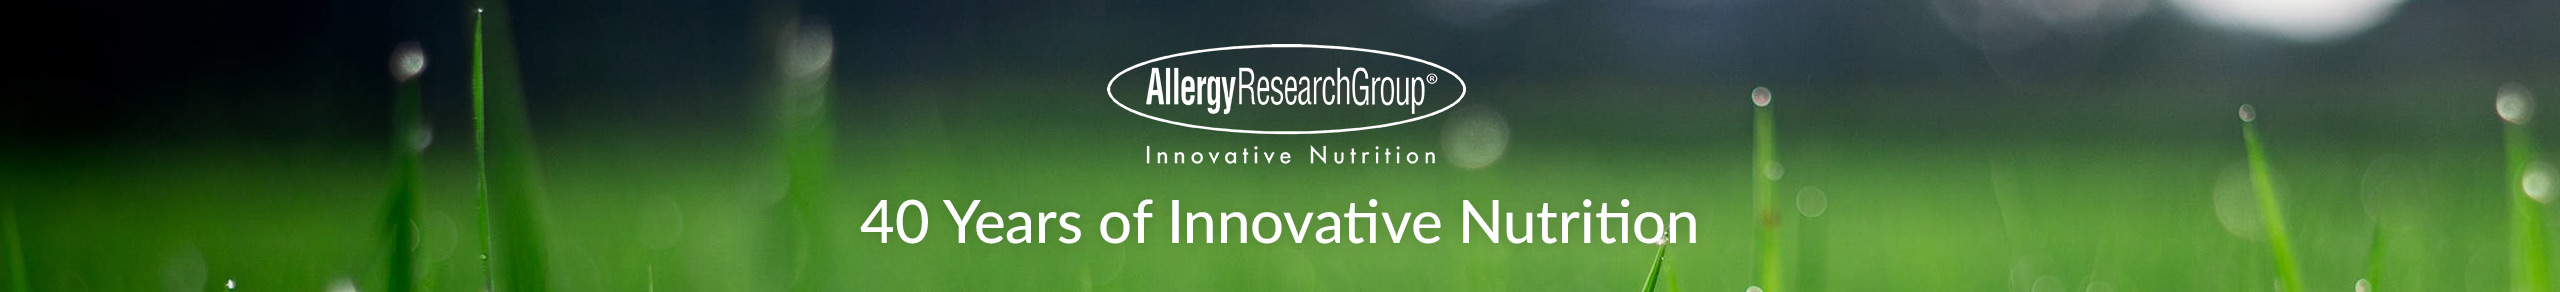 Allergy Research Group-manufacturer